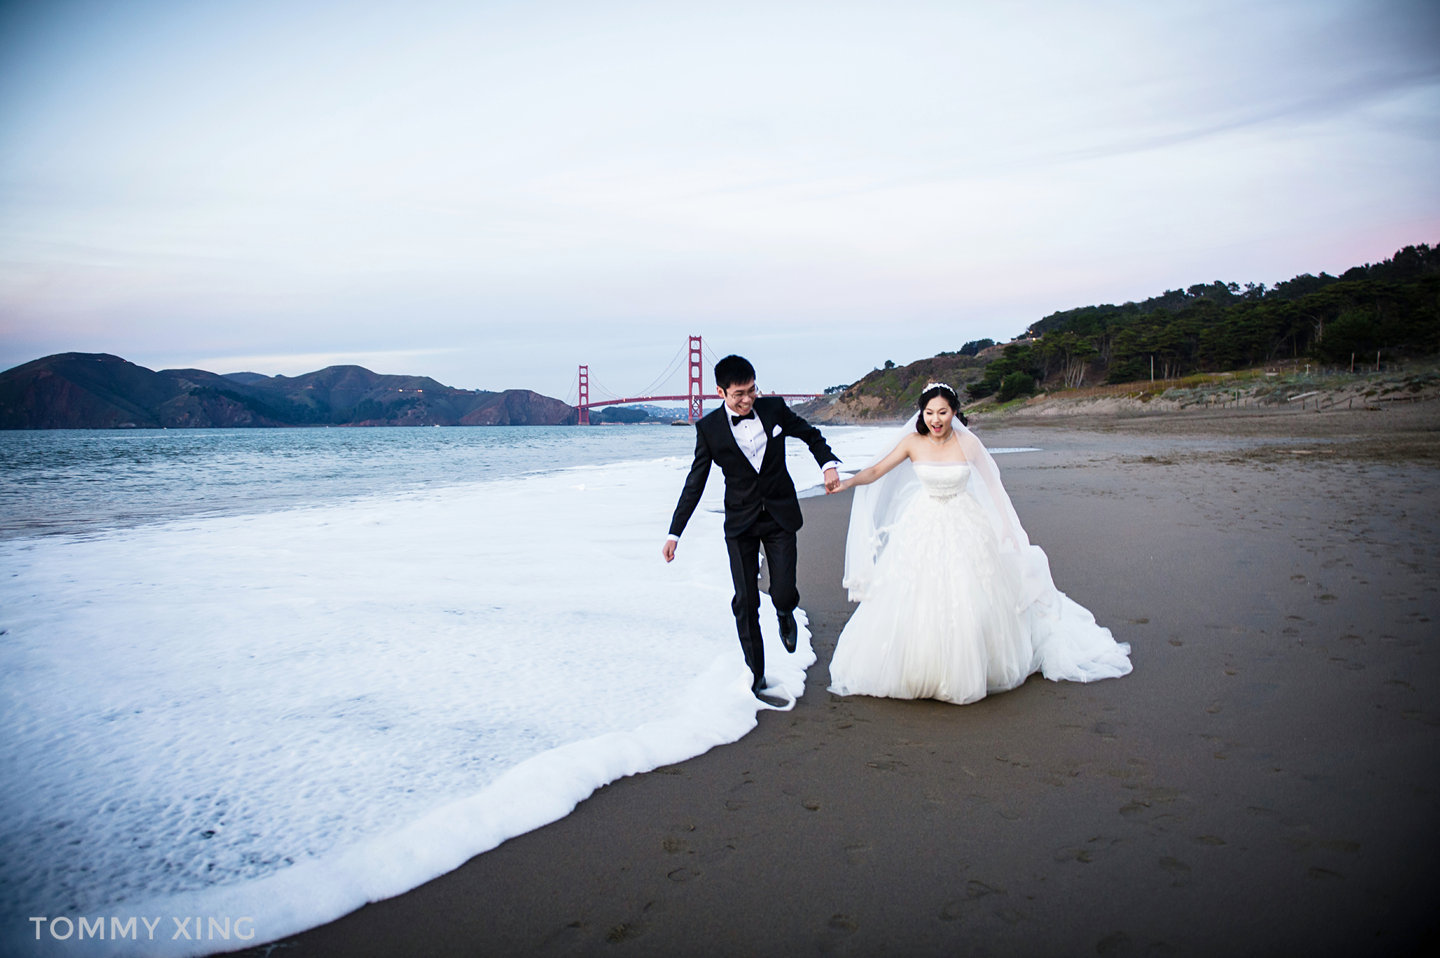 San Francisco Bay Area Chinese Pre Wedding Photographer Tommy Xing 旧金山湾区婚纱照摄影 06.jpg